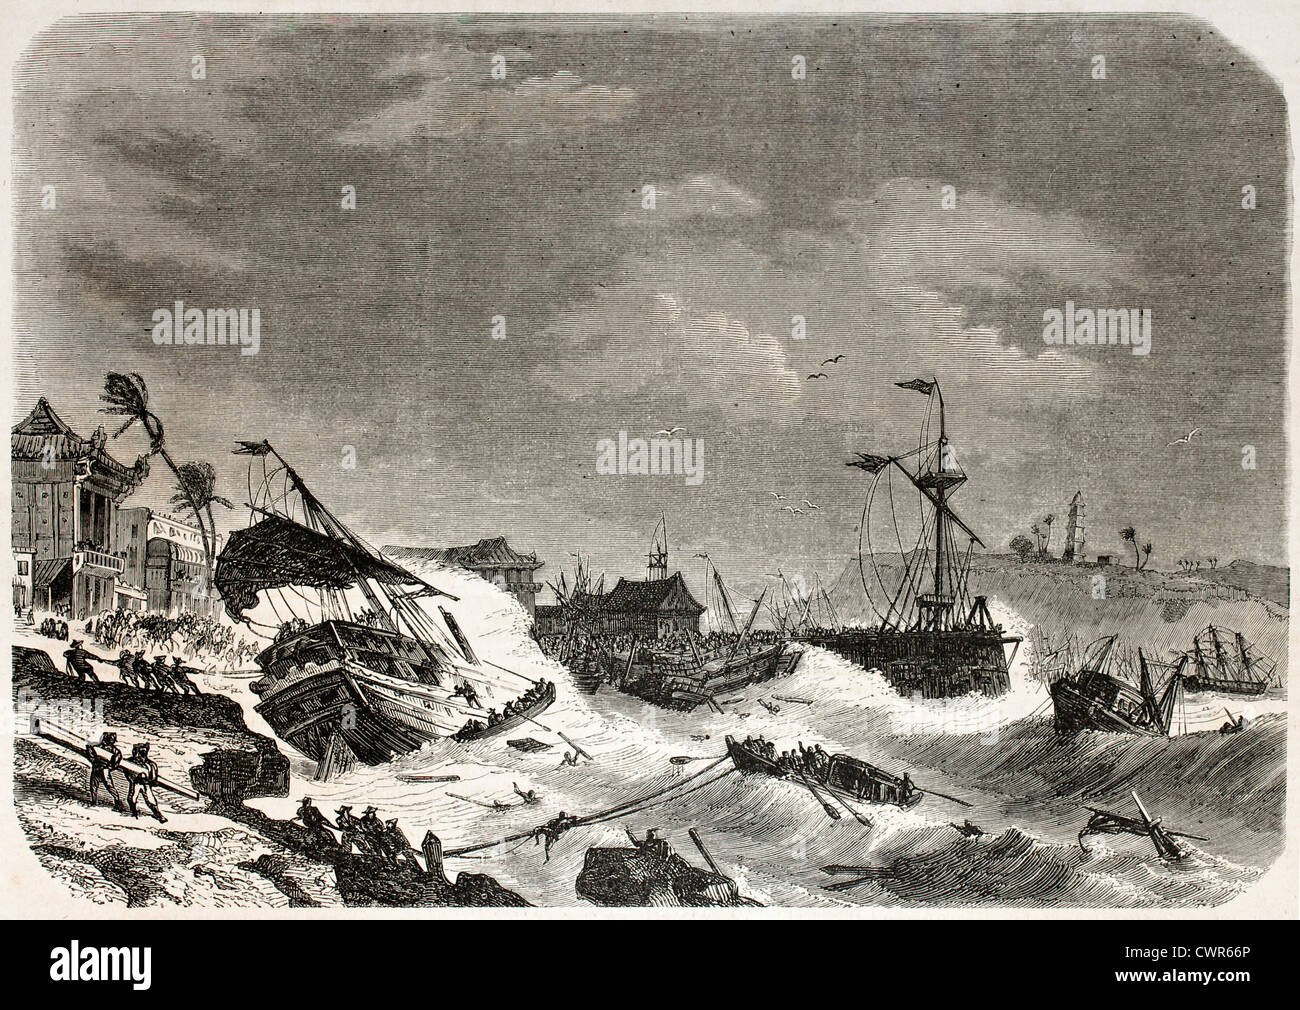 Storm damaging ships in the cost of Macao - Stock Image